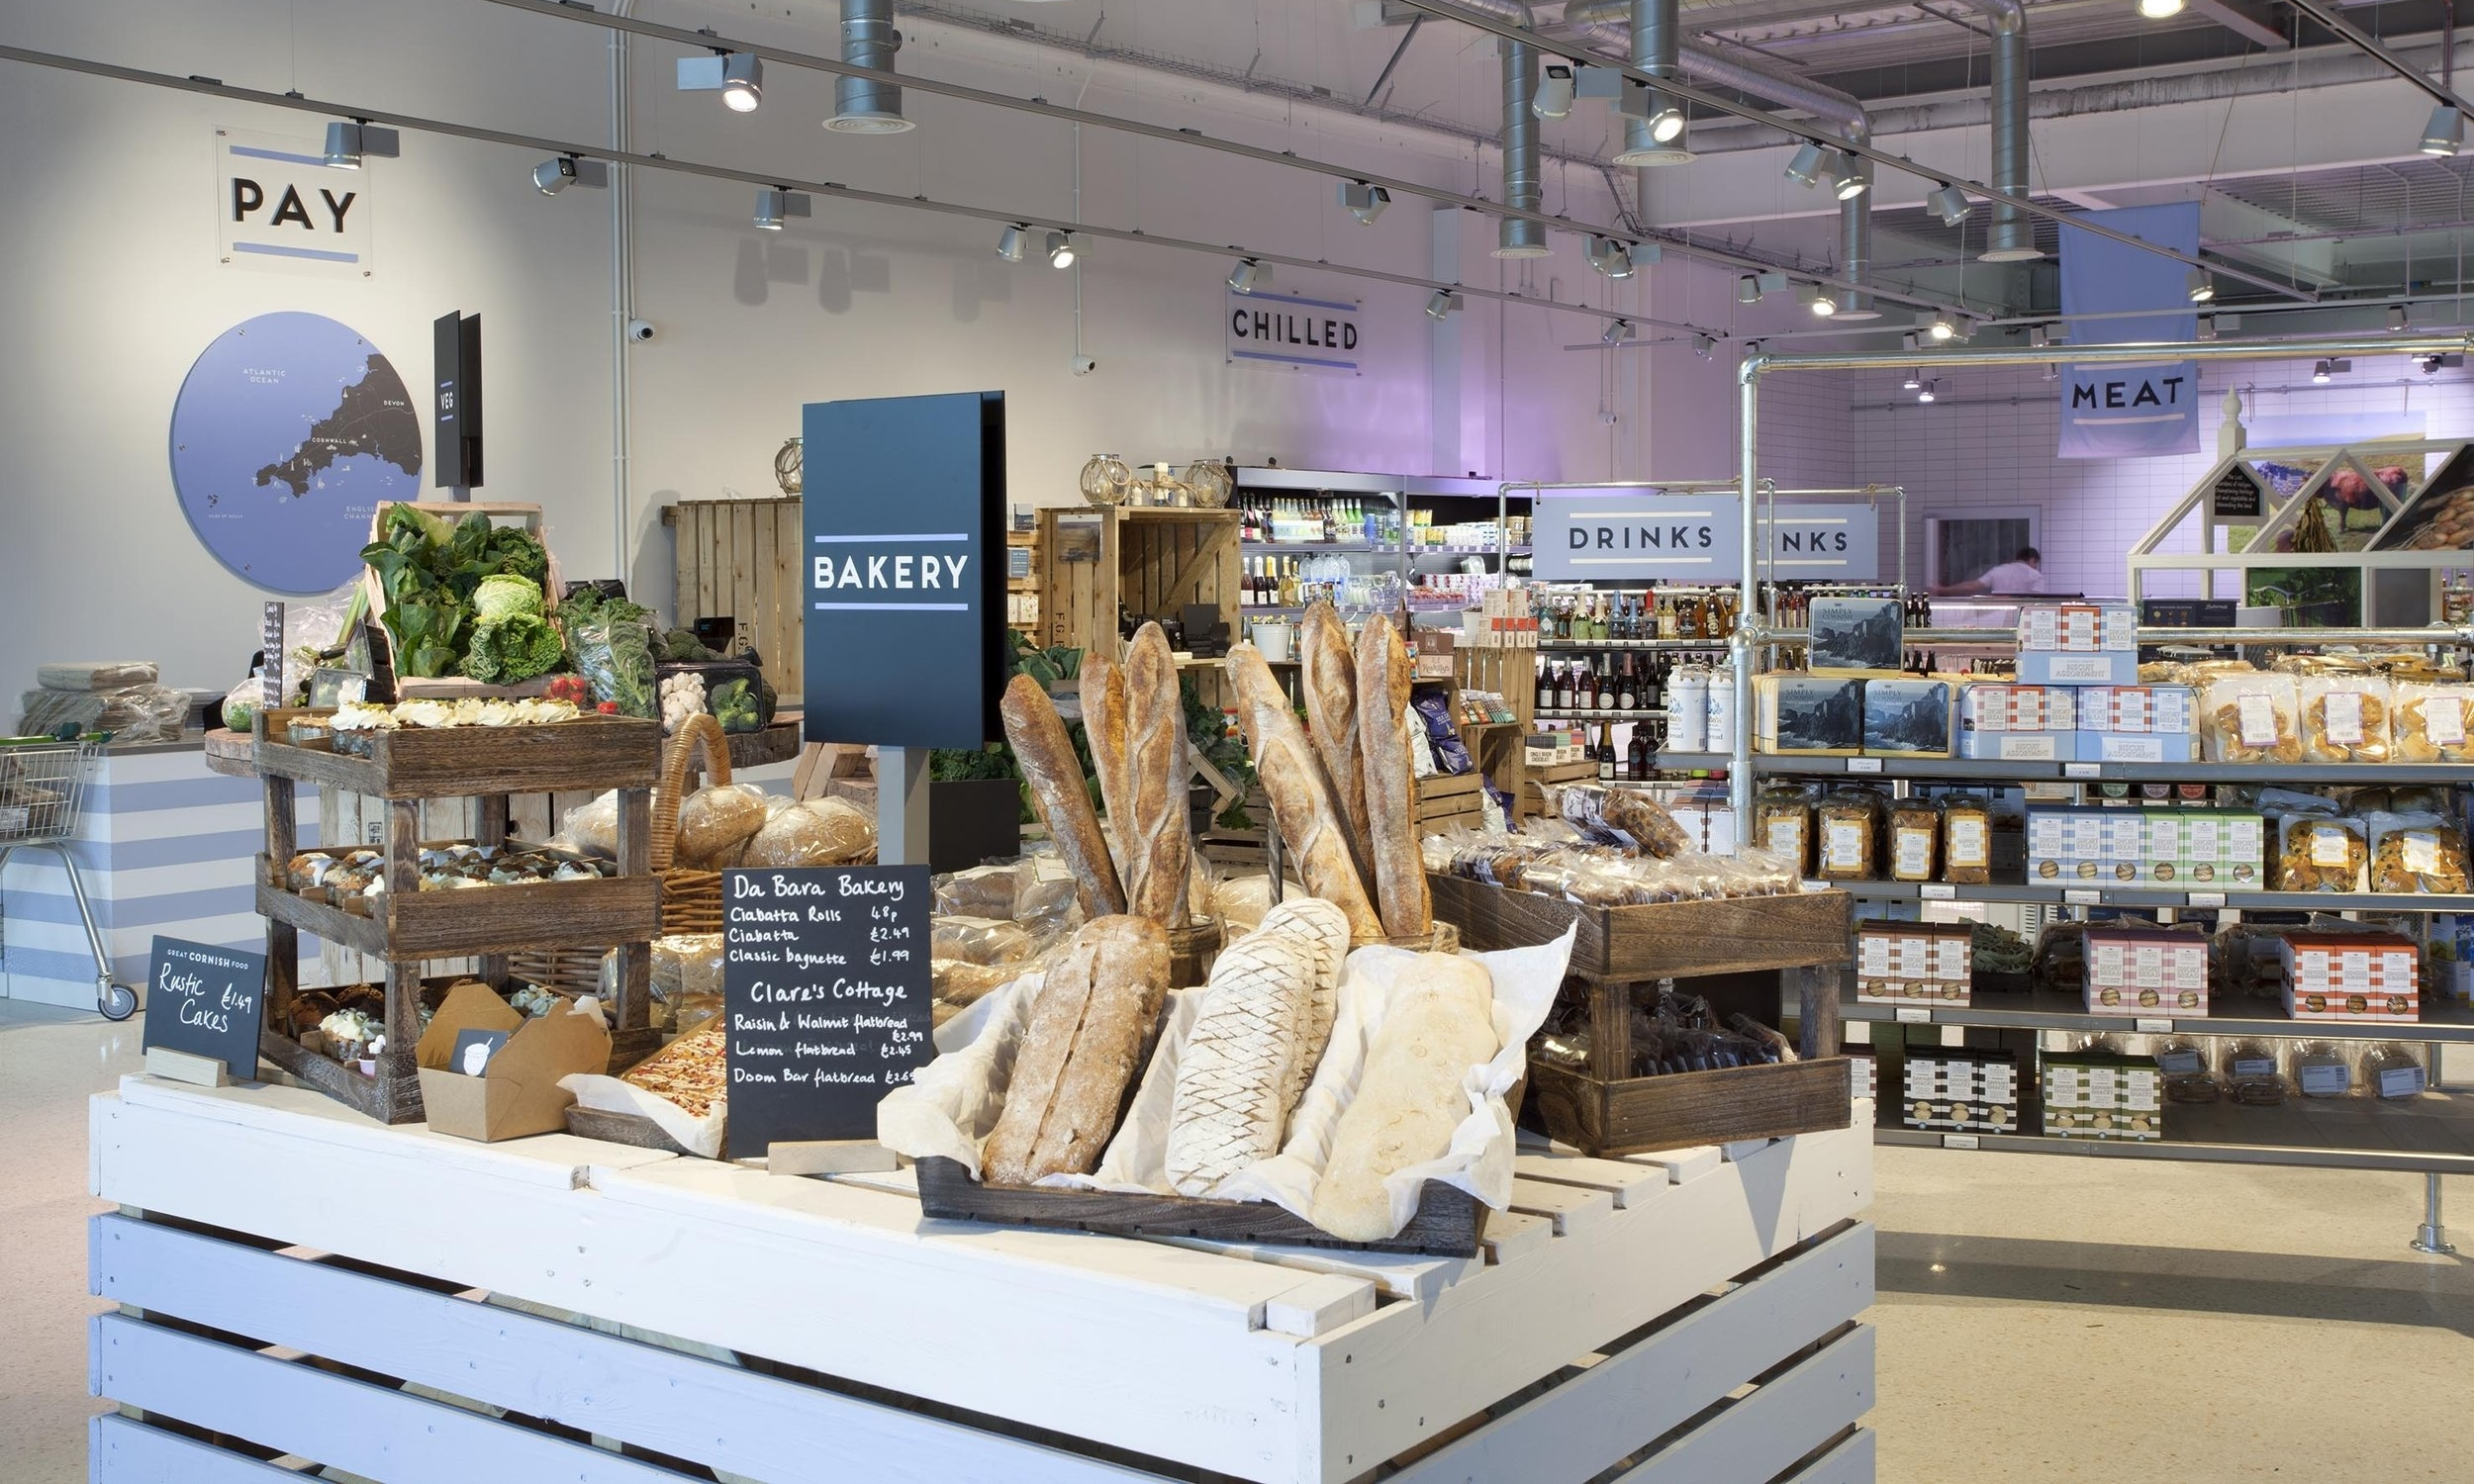 GREAT CORNISH FOOD - A retail revolution; the ultimate independent local food store with over 2000 lines, with its own butcher, fishmonger, deli and beautiful café. 5000 sq metres dedicated to Cornish produce, sitting alongside Truro's new Waitrose store. Everything you need in one convenient location with free parking